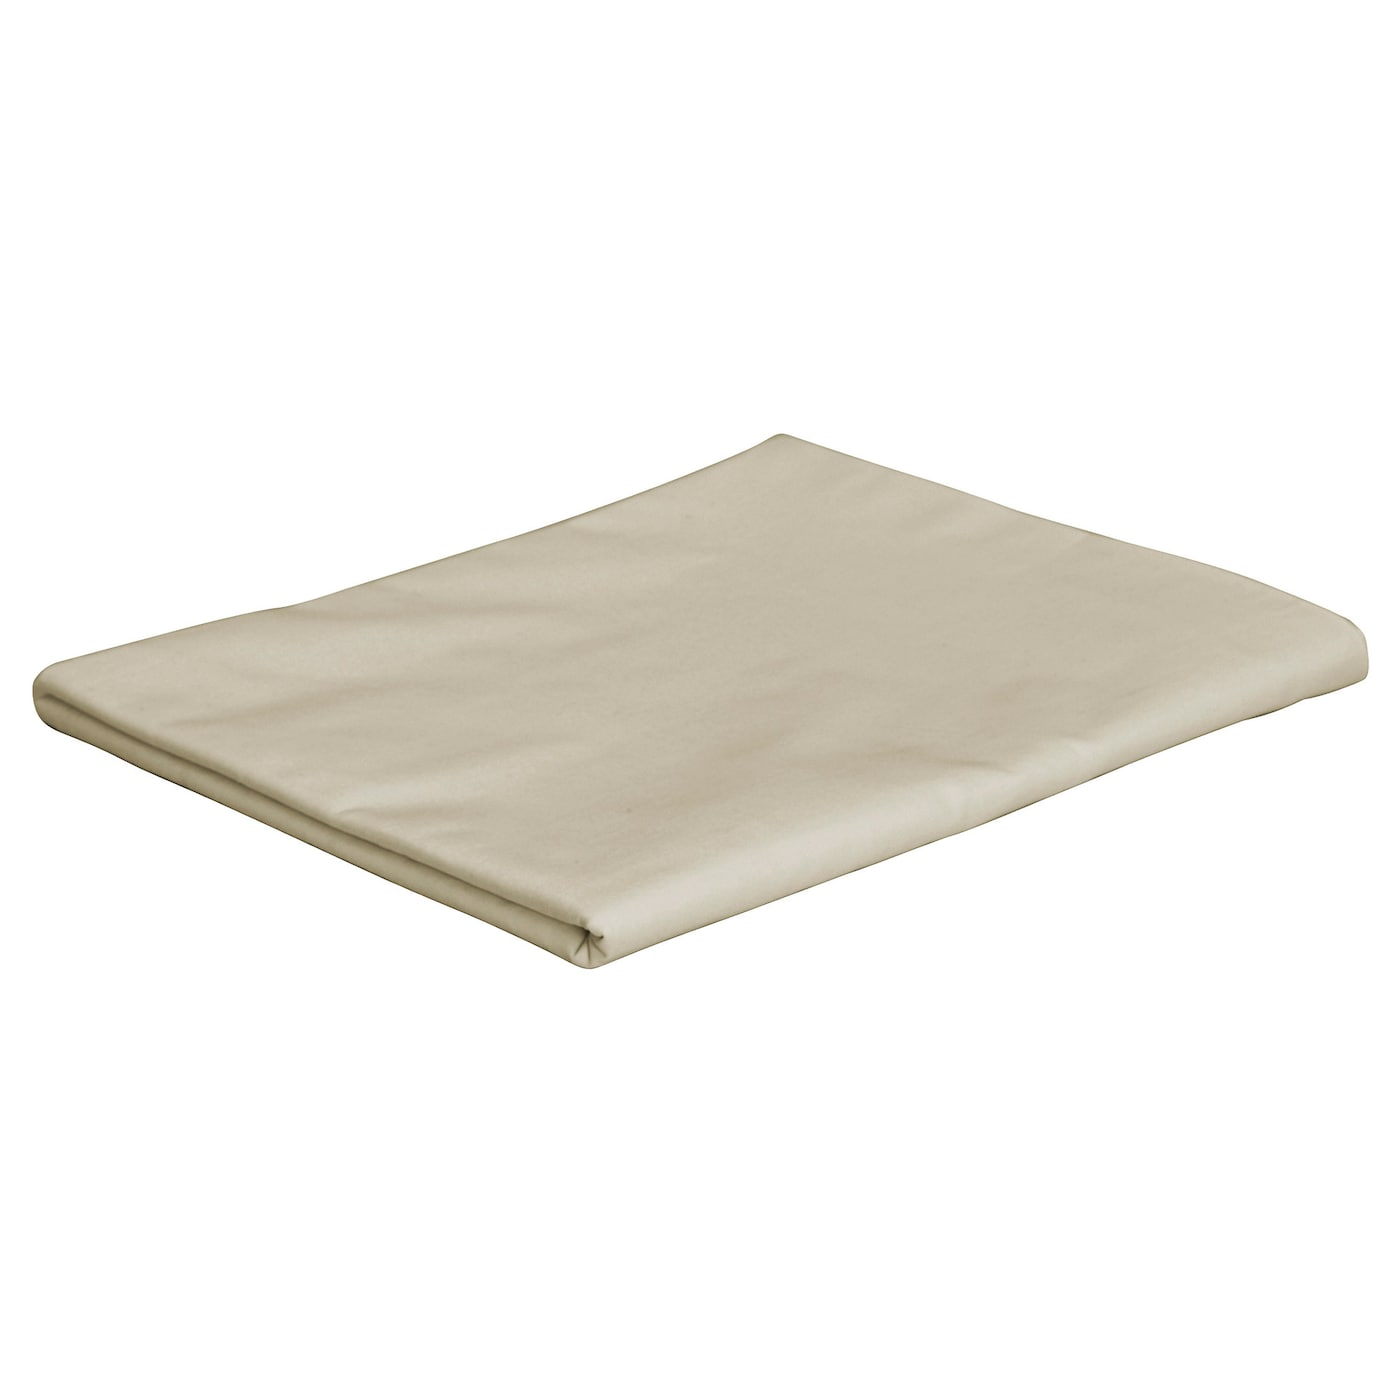 IKEA DVALA sheet Cotton, feels soft and nice against your skin. Fits beds that are 160-180 cm wide.